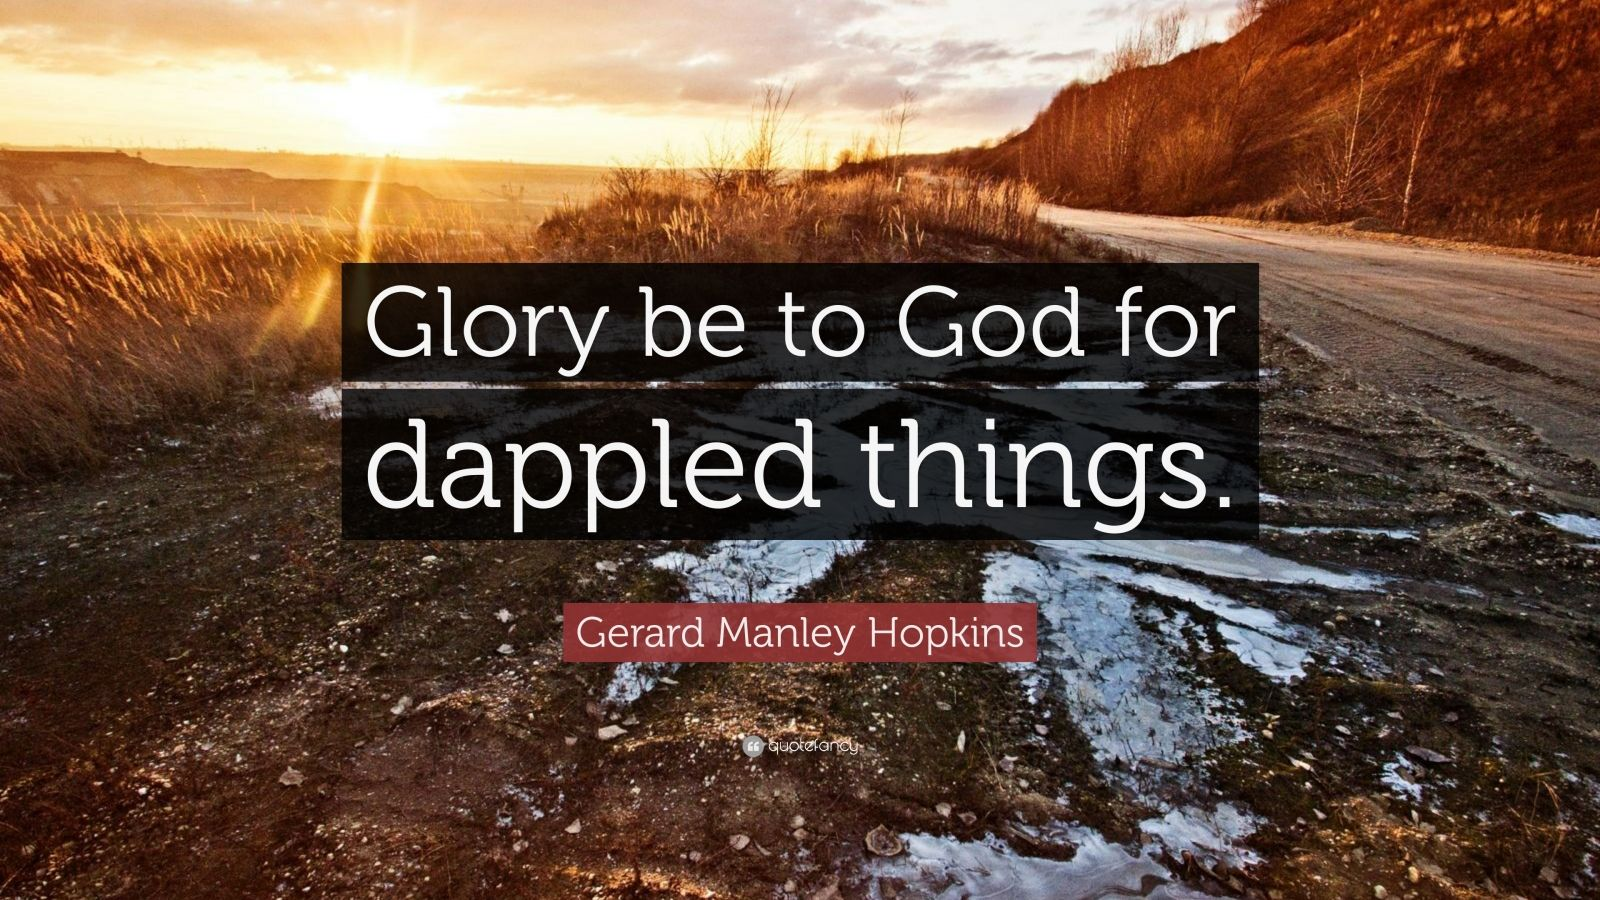 """Gerard Manley Hopkins Quote: """"Glory be to God for dappled things."""""""